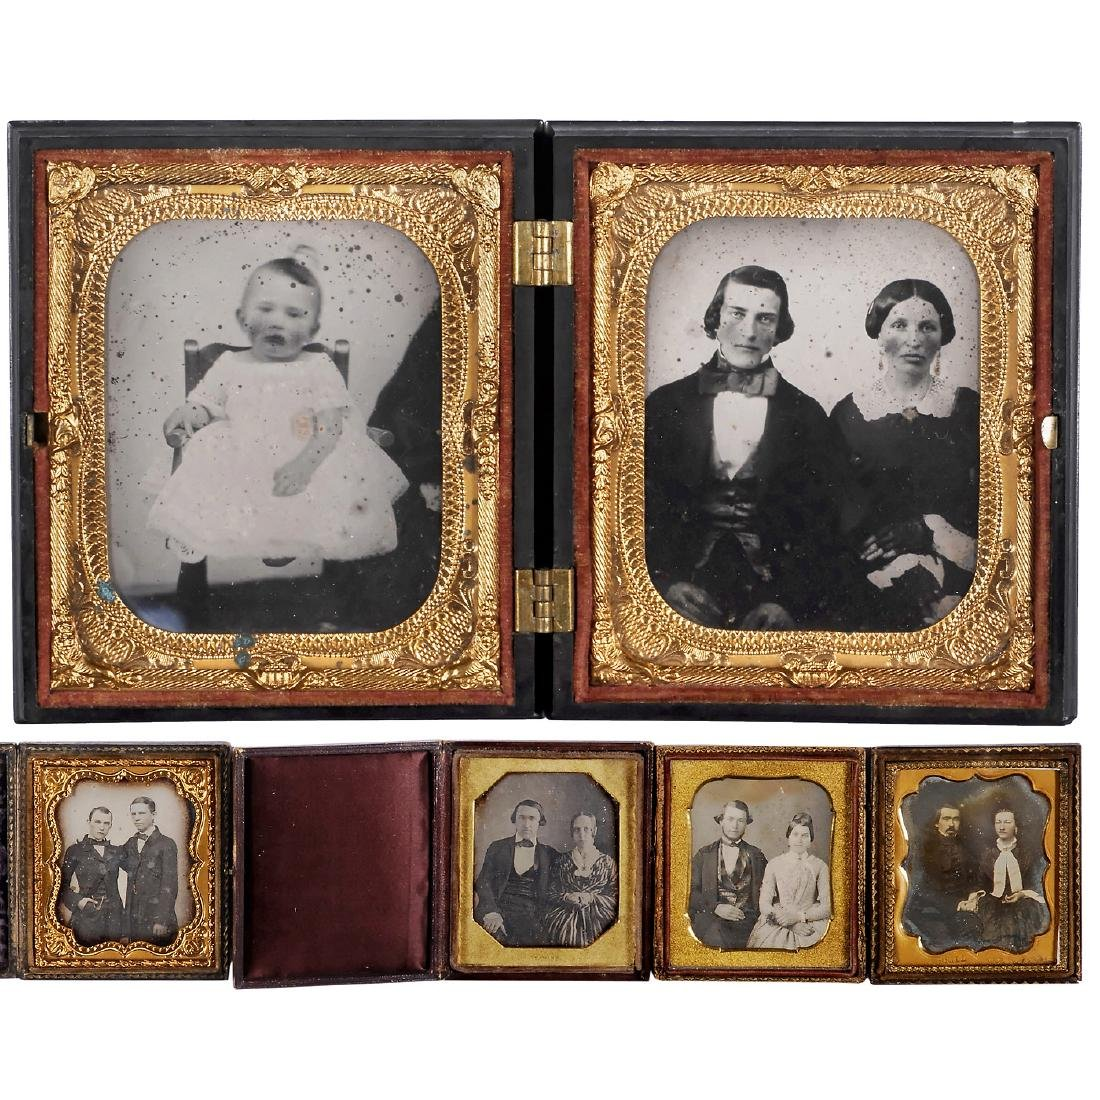 Union Case with Ambrotype and 4 Daguerreotypes, c.